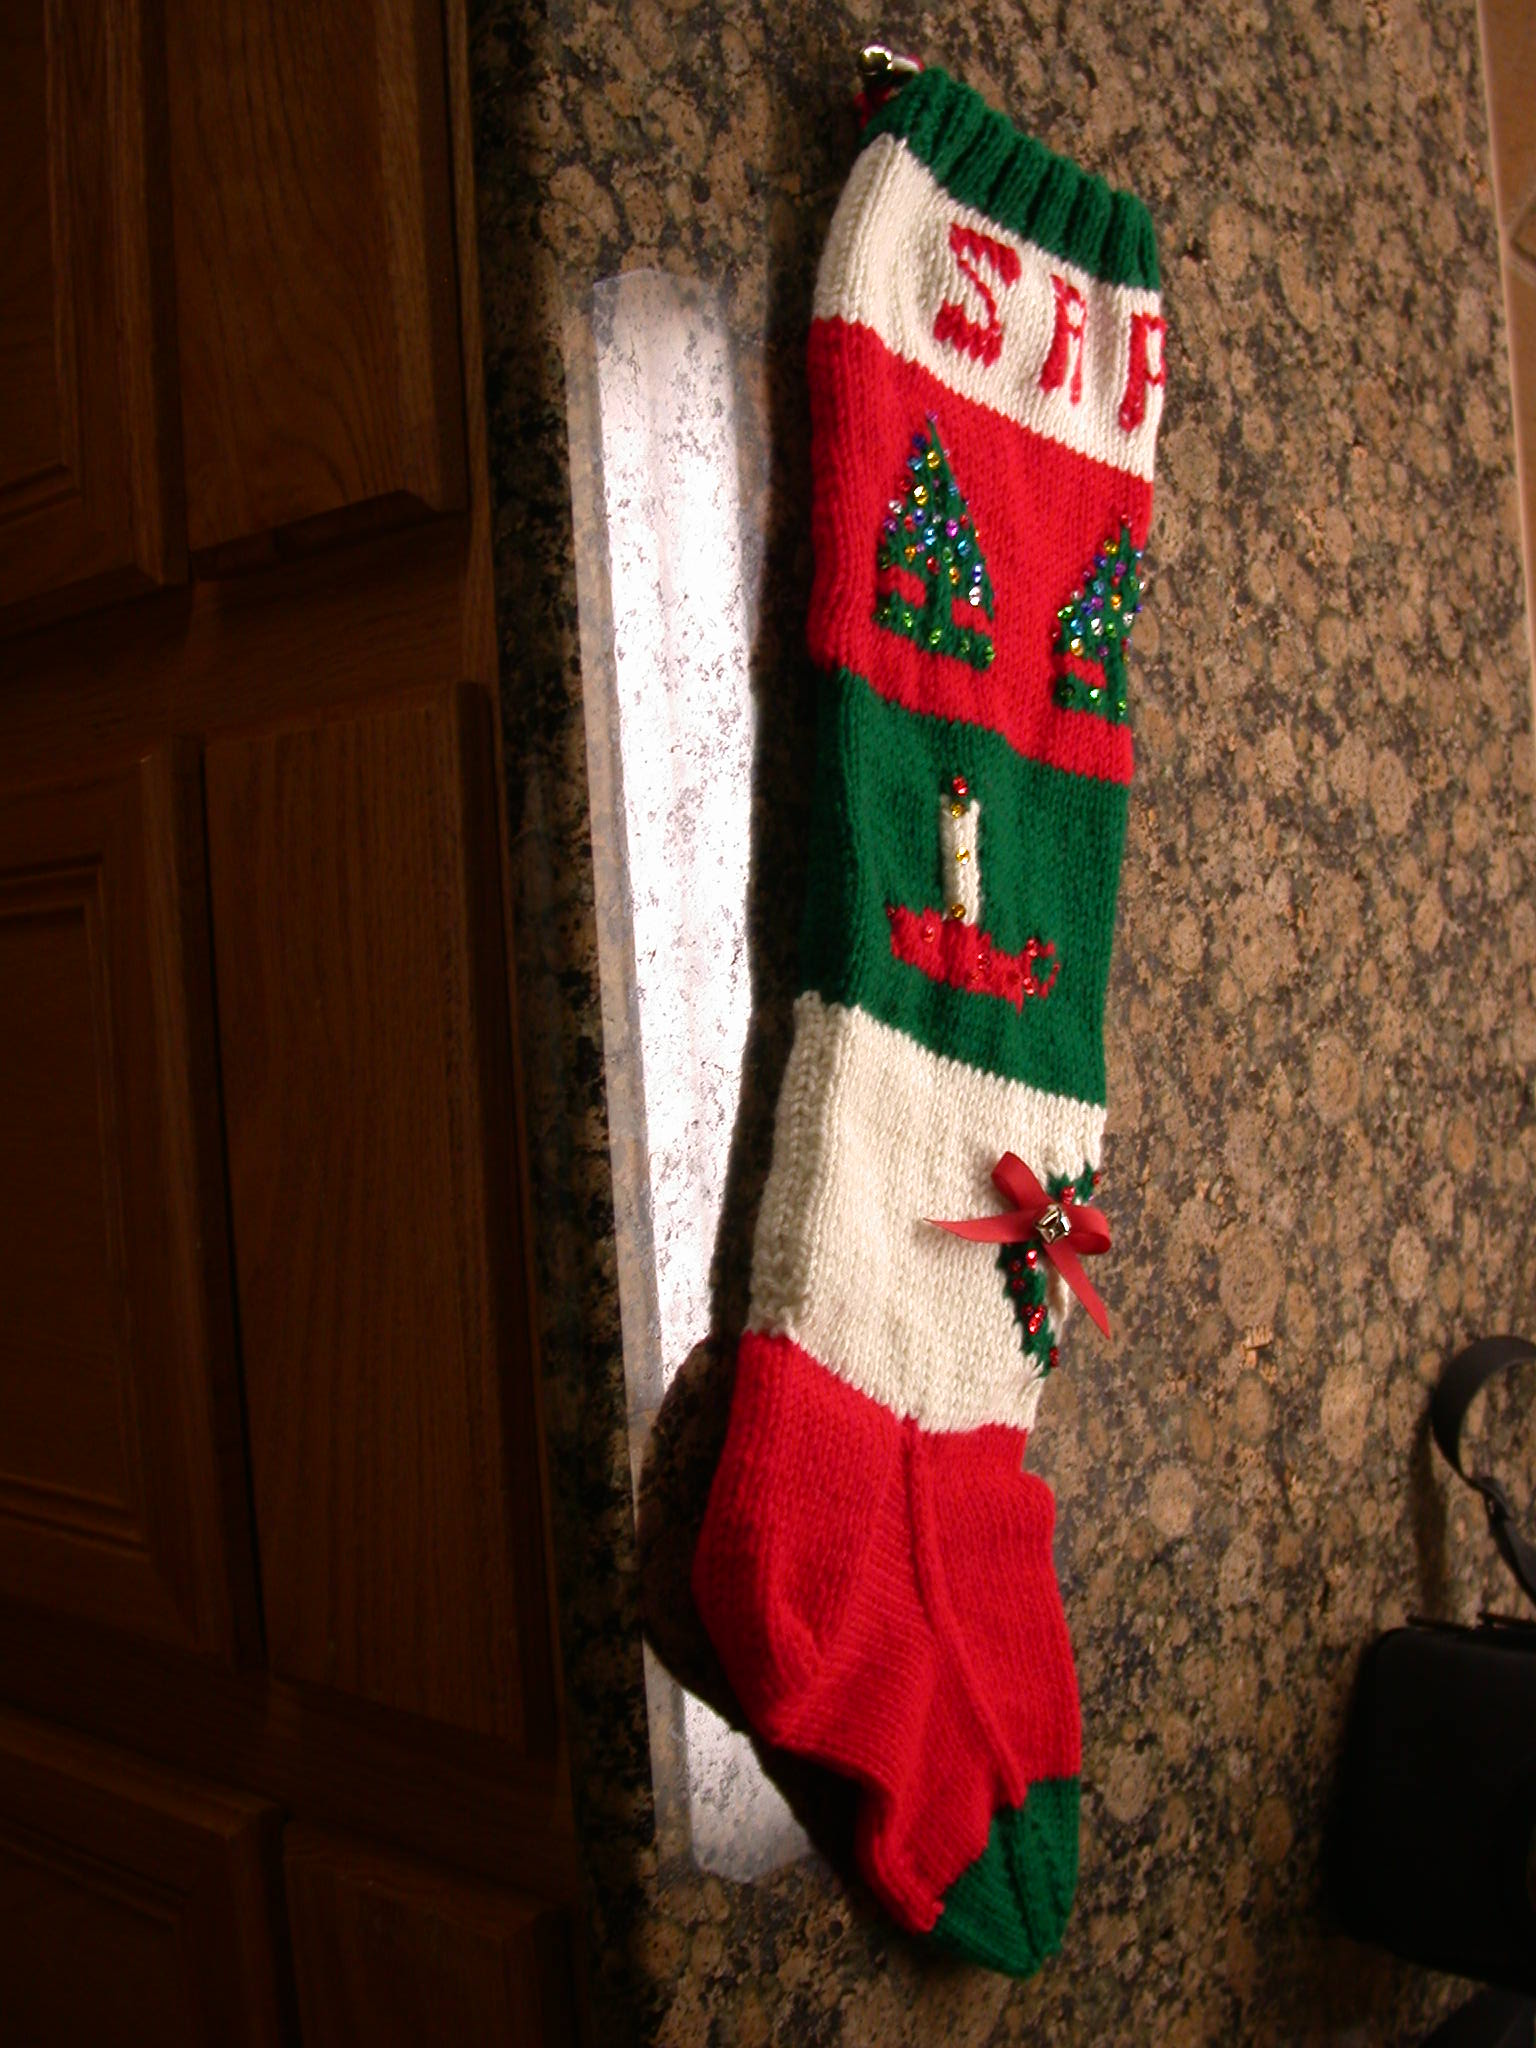 Fabulous knit christmas stockings with multicolorful christmas stocking and fireplace at chistmas day interior design